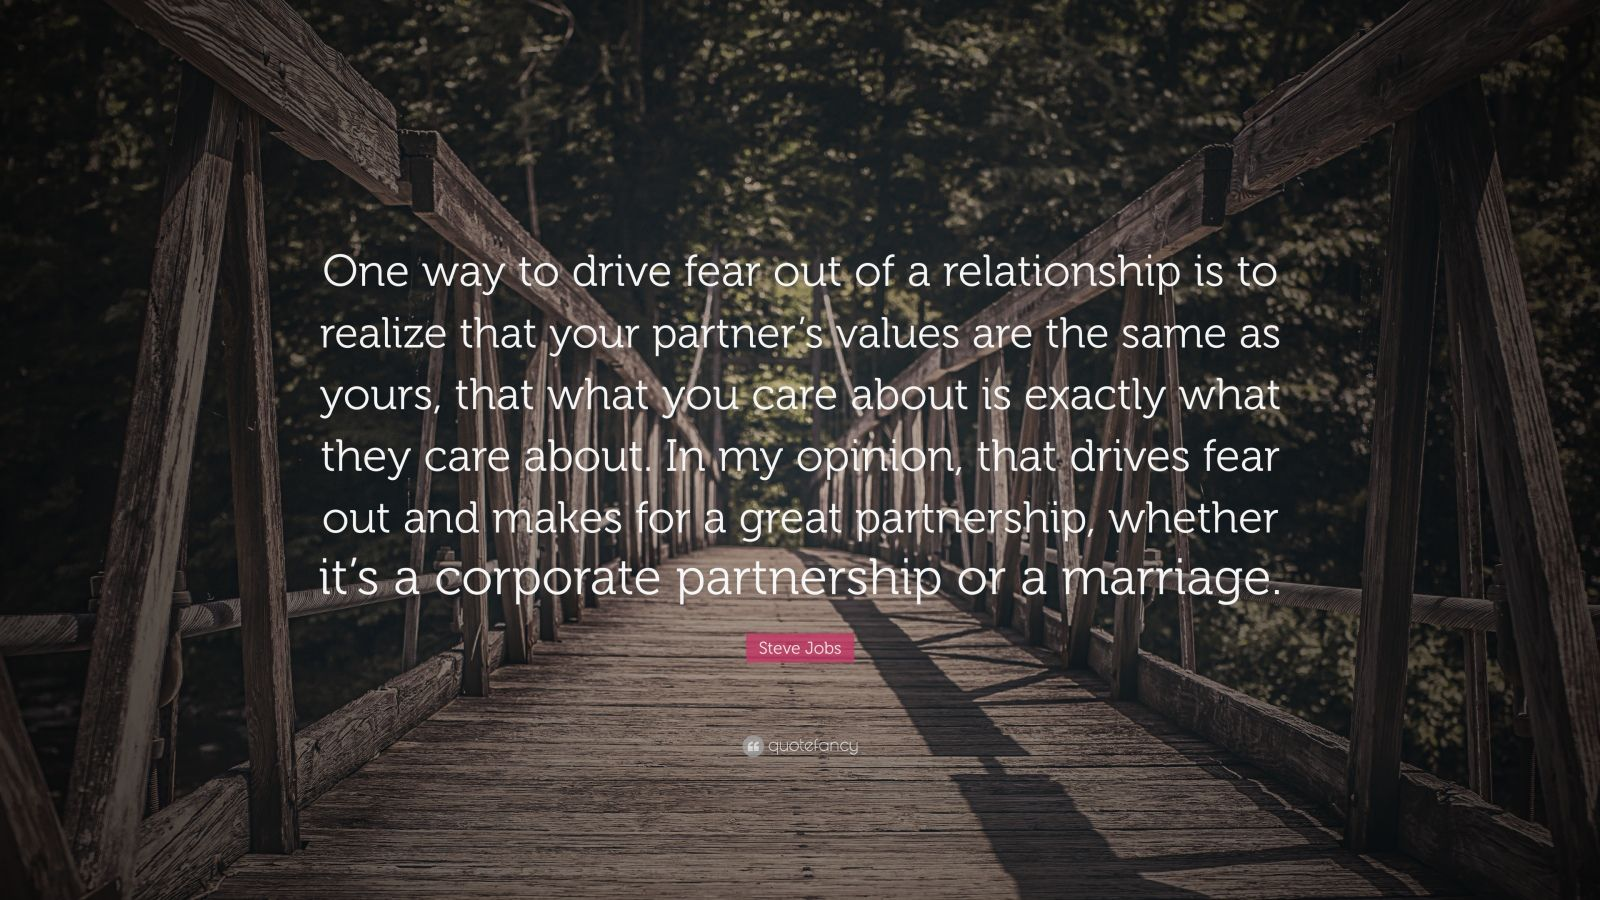 "Steve Jobs Quote: ""One way to drive fear out of a relationship is to realize that your partner's values are the same as yours, that what you care about is exactly what they care about. In my opinion, that drives fear out and makes for a great partnership, whether it's a corporate partnership or a marriage."""